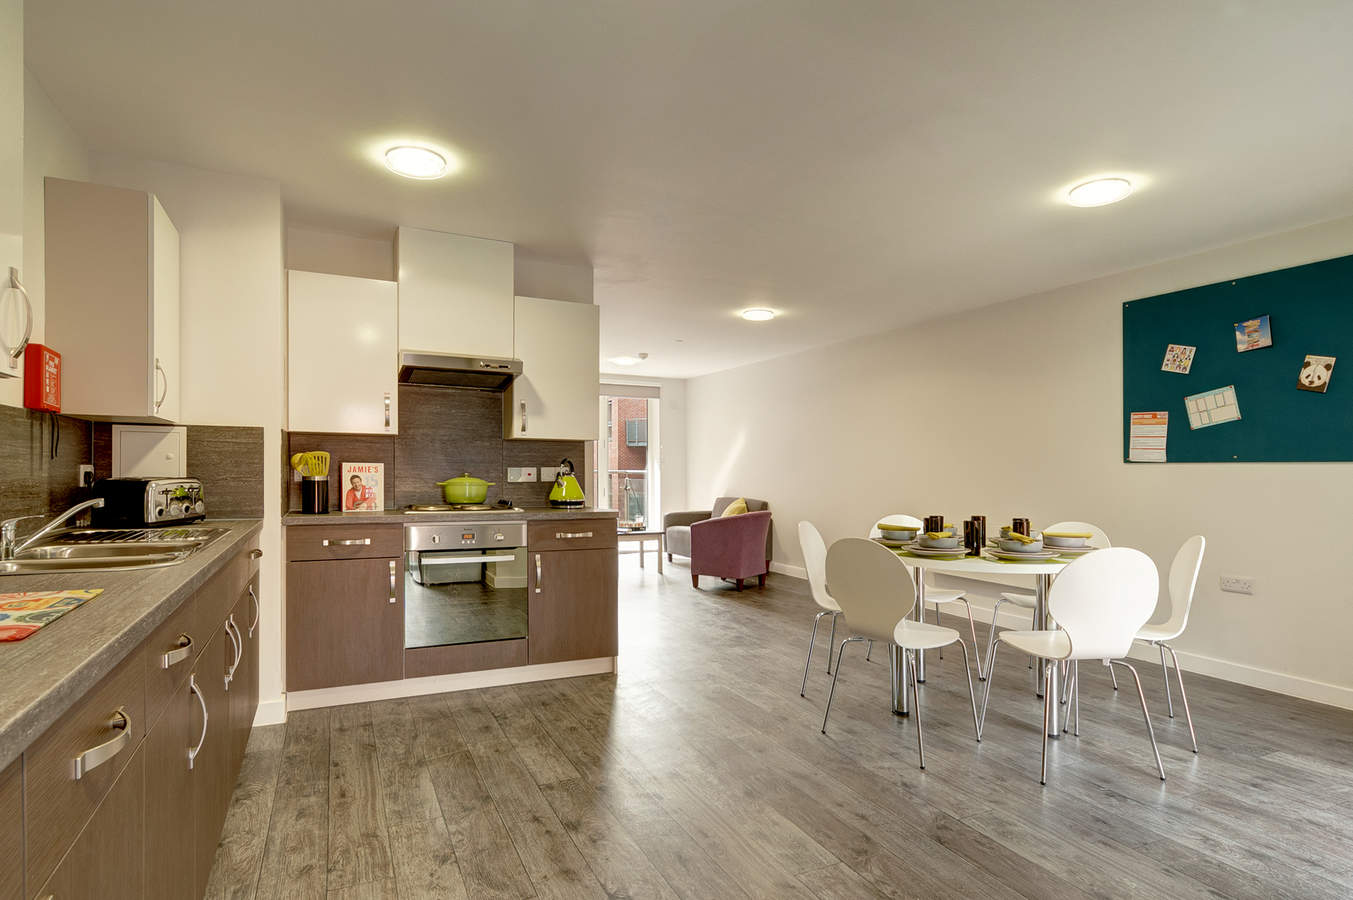 16-fresh-student-living-sheffield-cornerhouse-03-shared-flat-living-area-photo-07_web